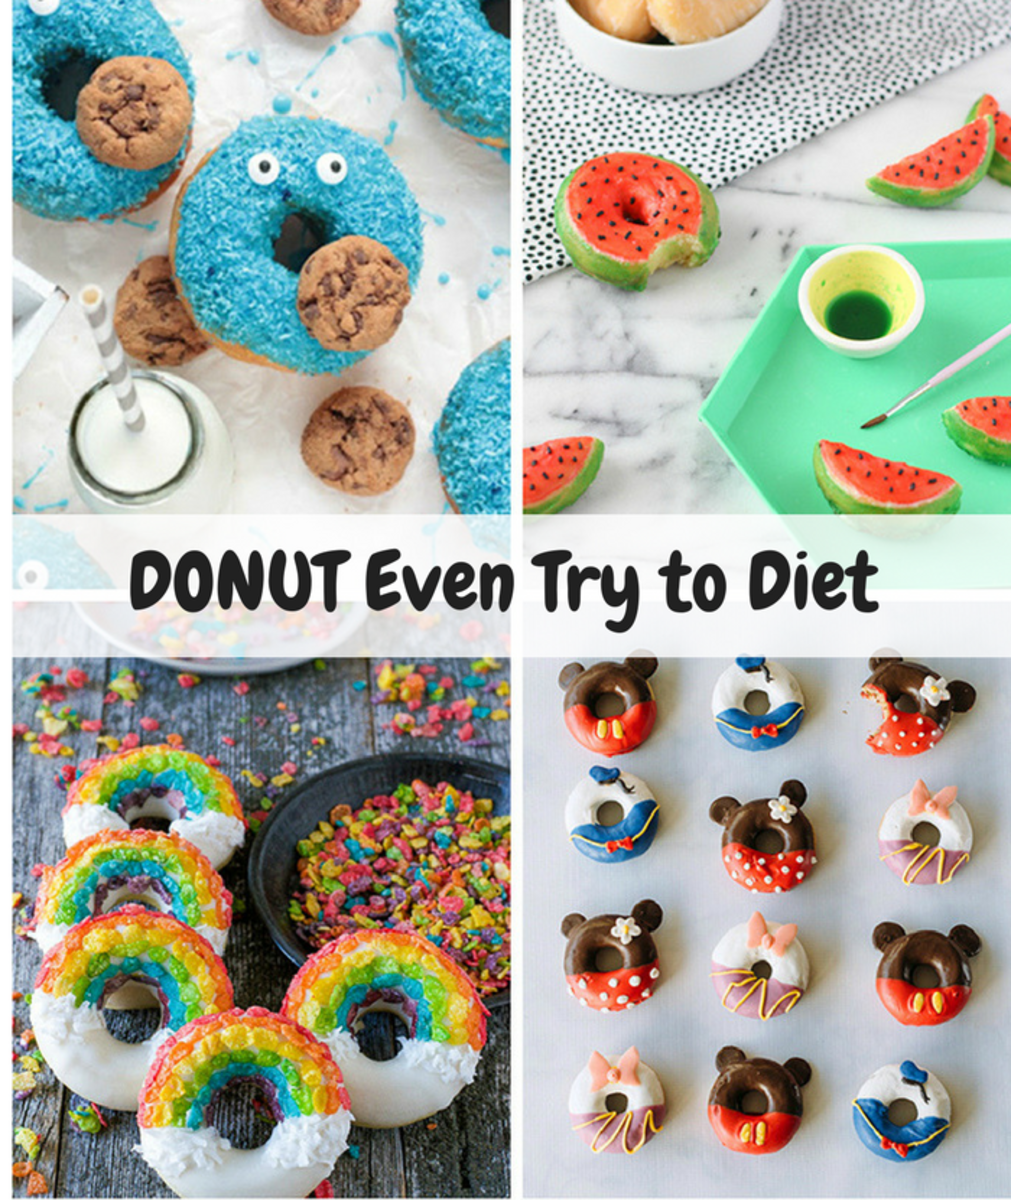 Donut Even Try to Diet